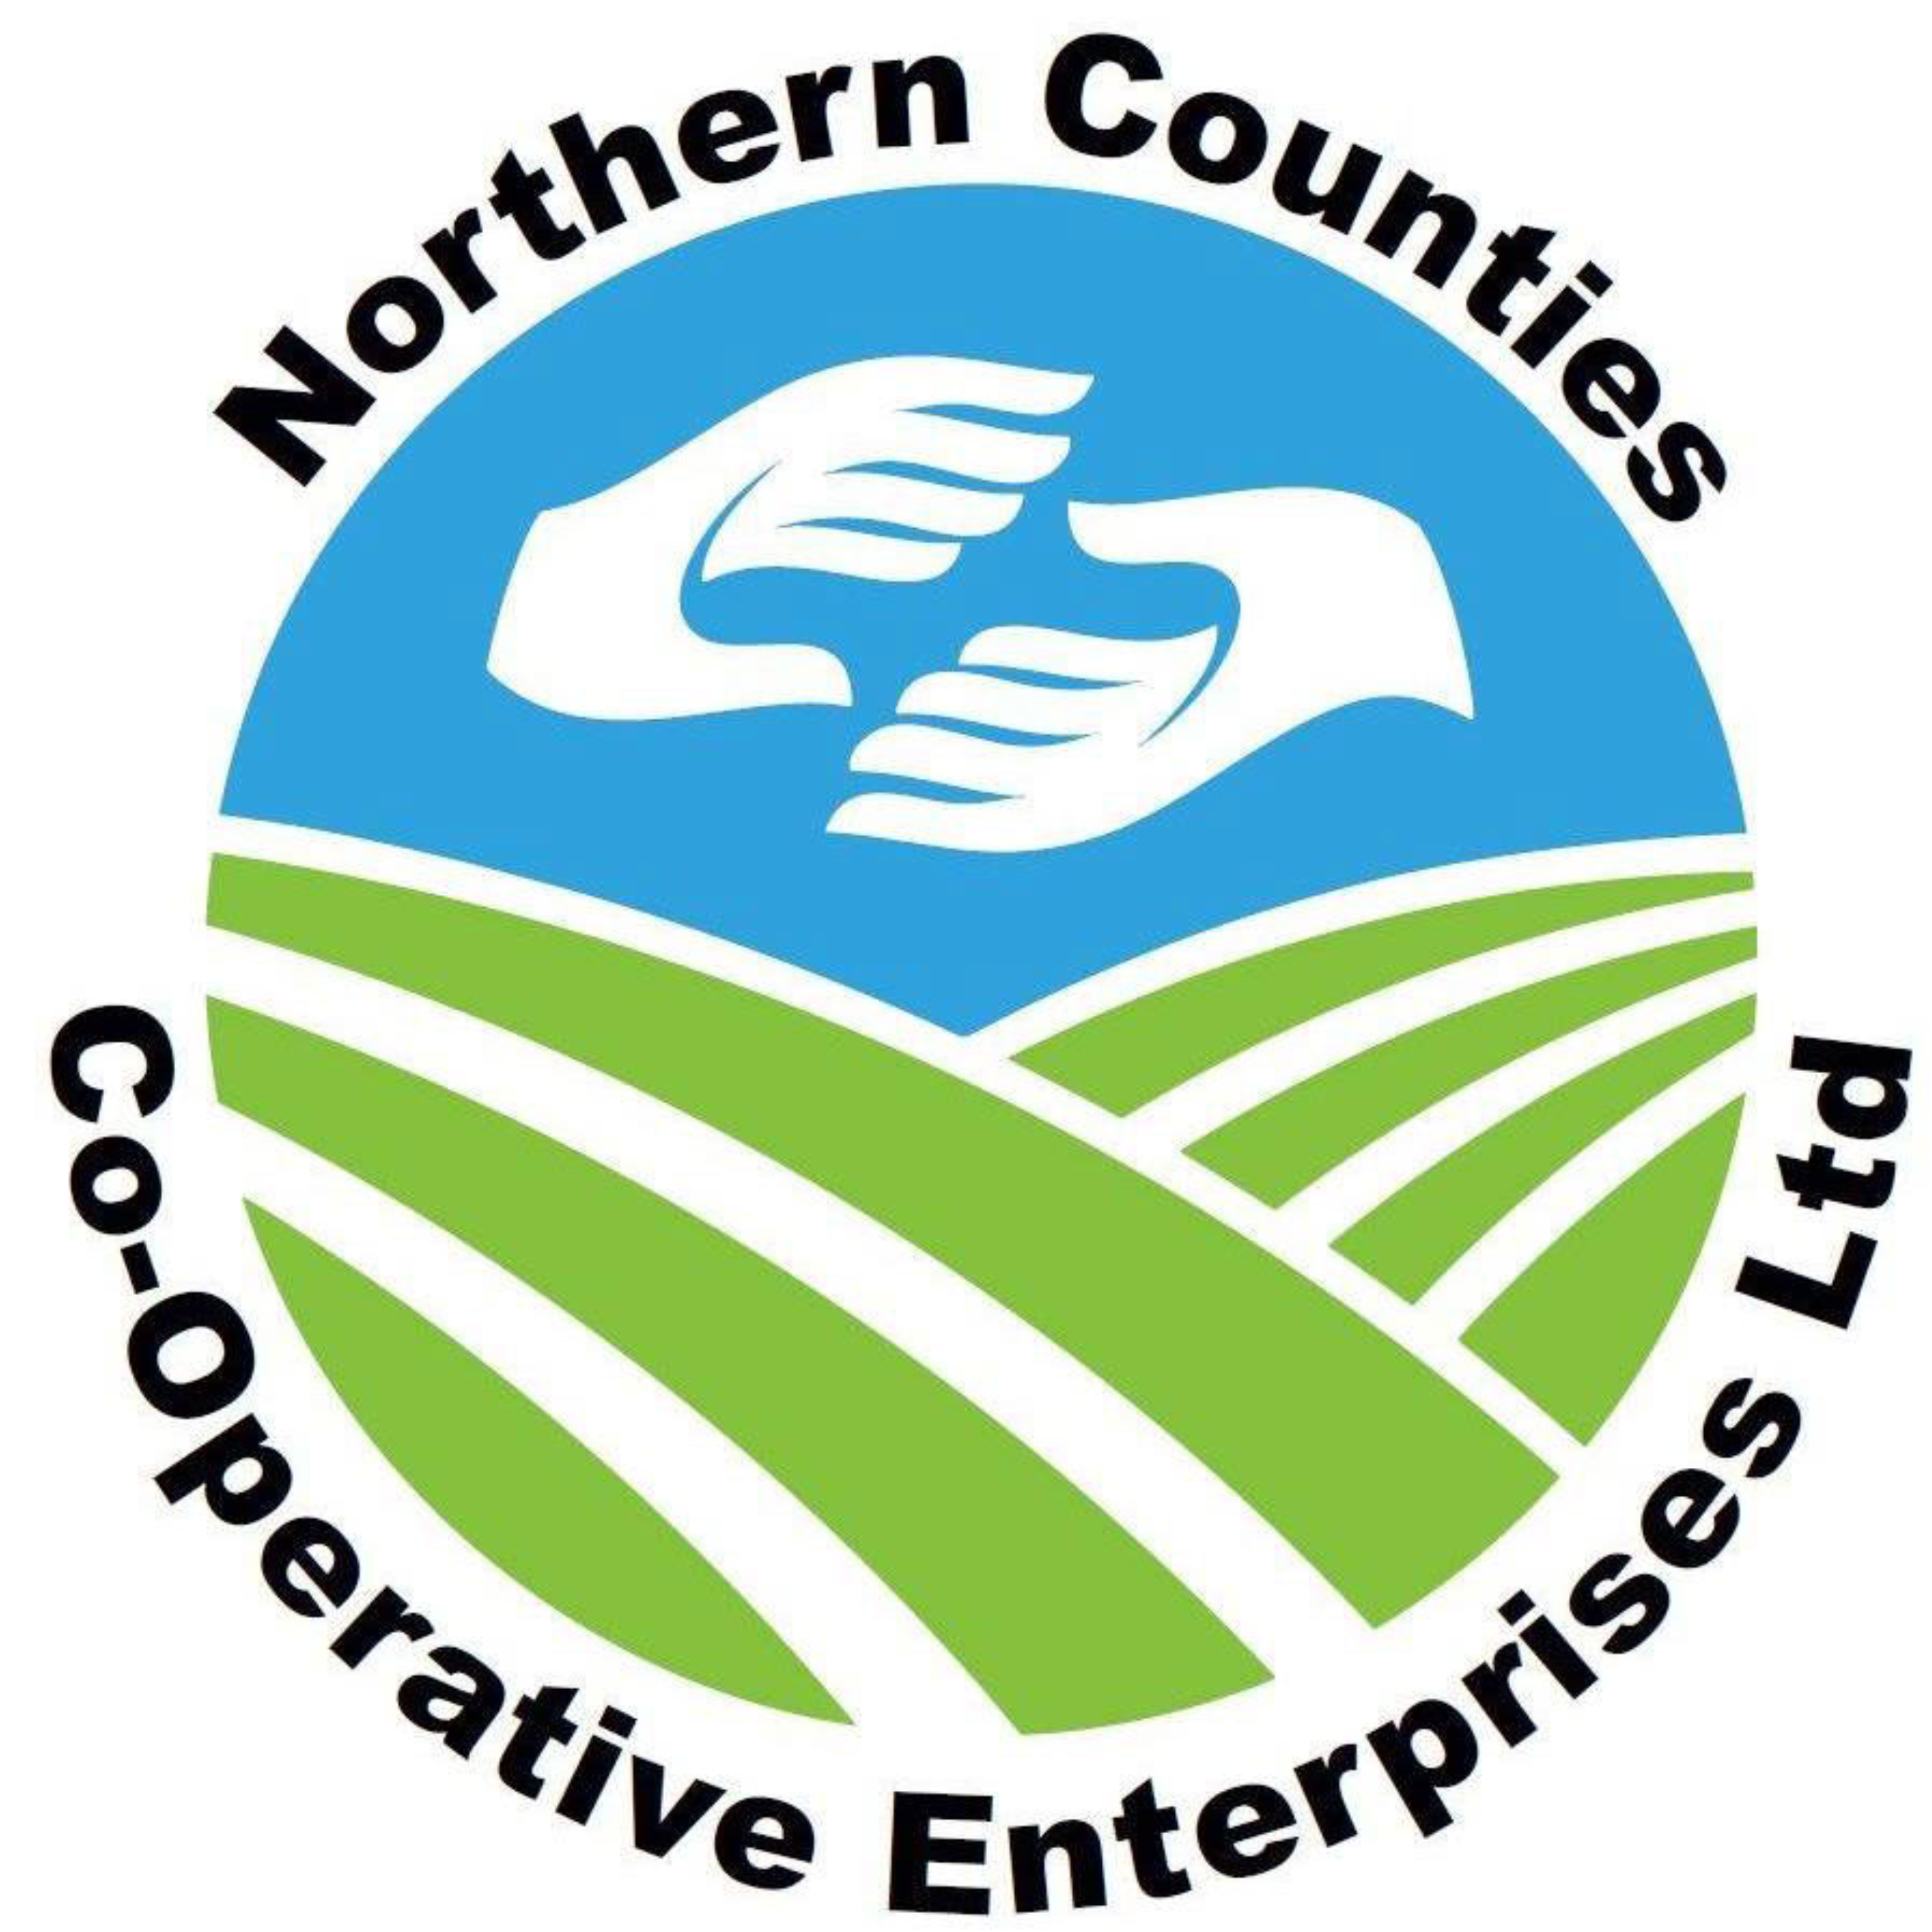 Northern Counties Co operative Enterprises Ltd